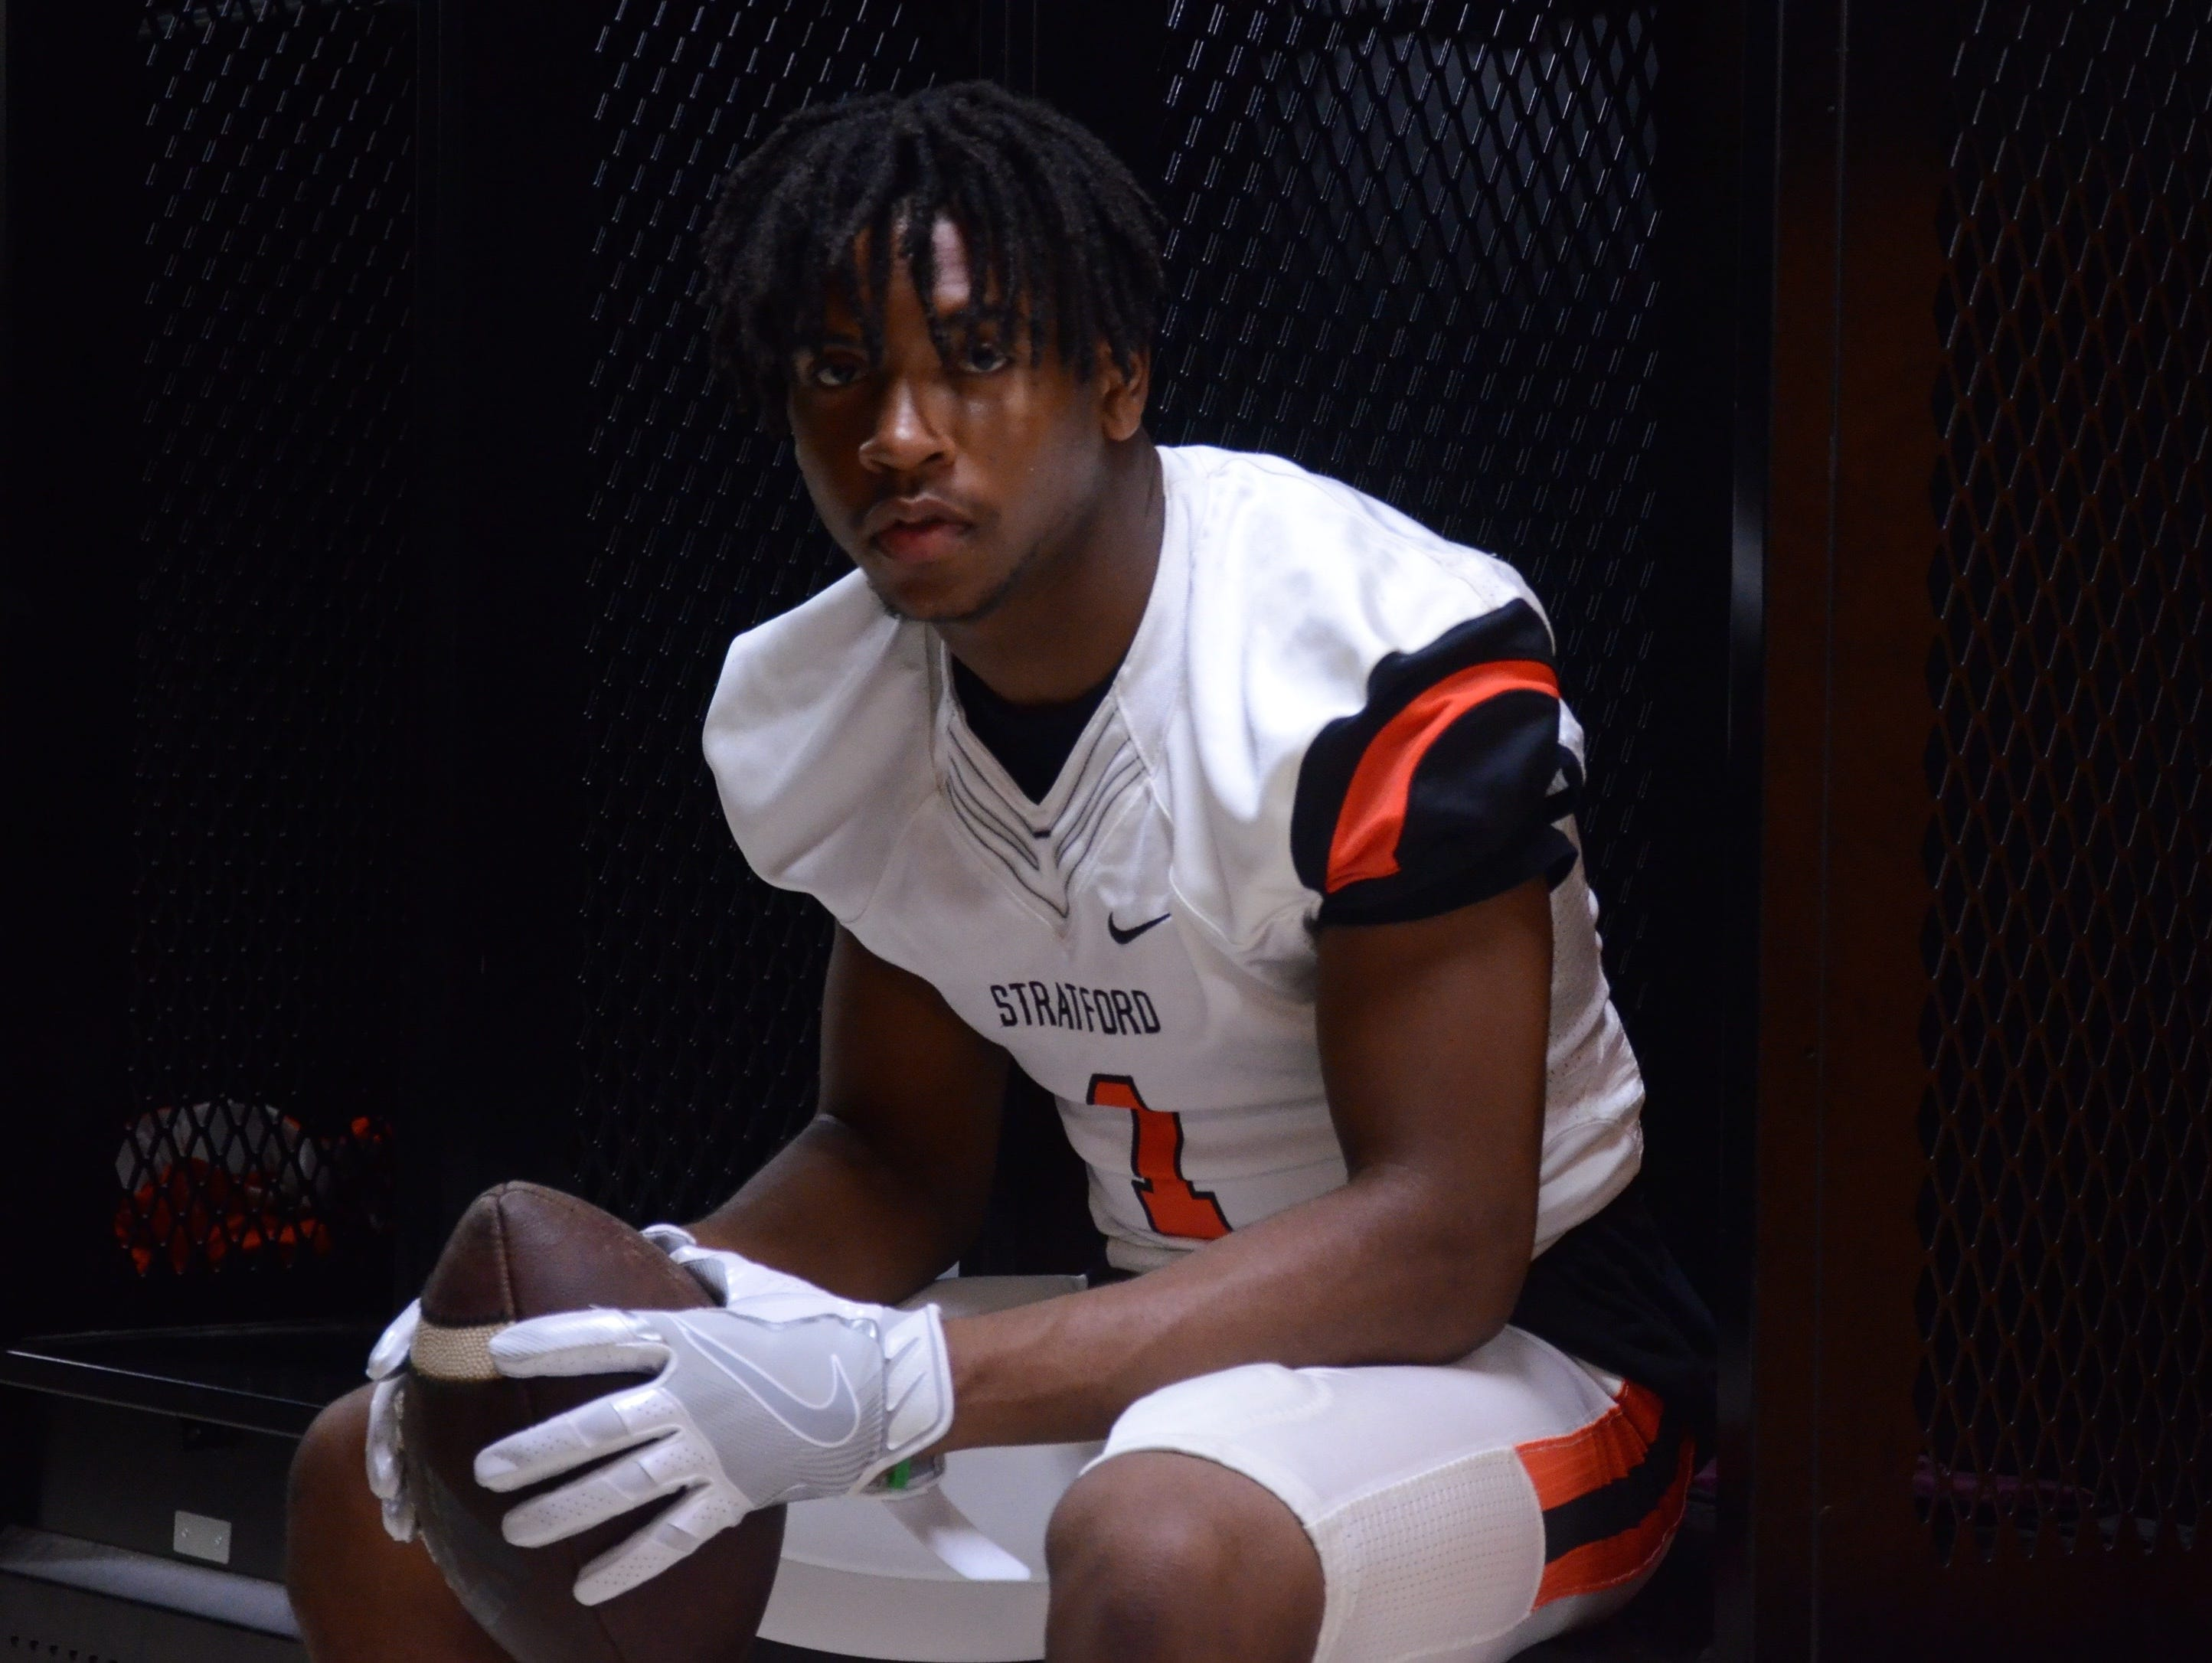 Stratford's T.J. Carter has committed to Memphis.